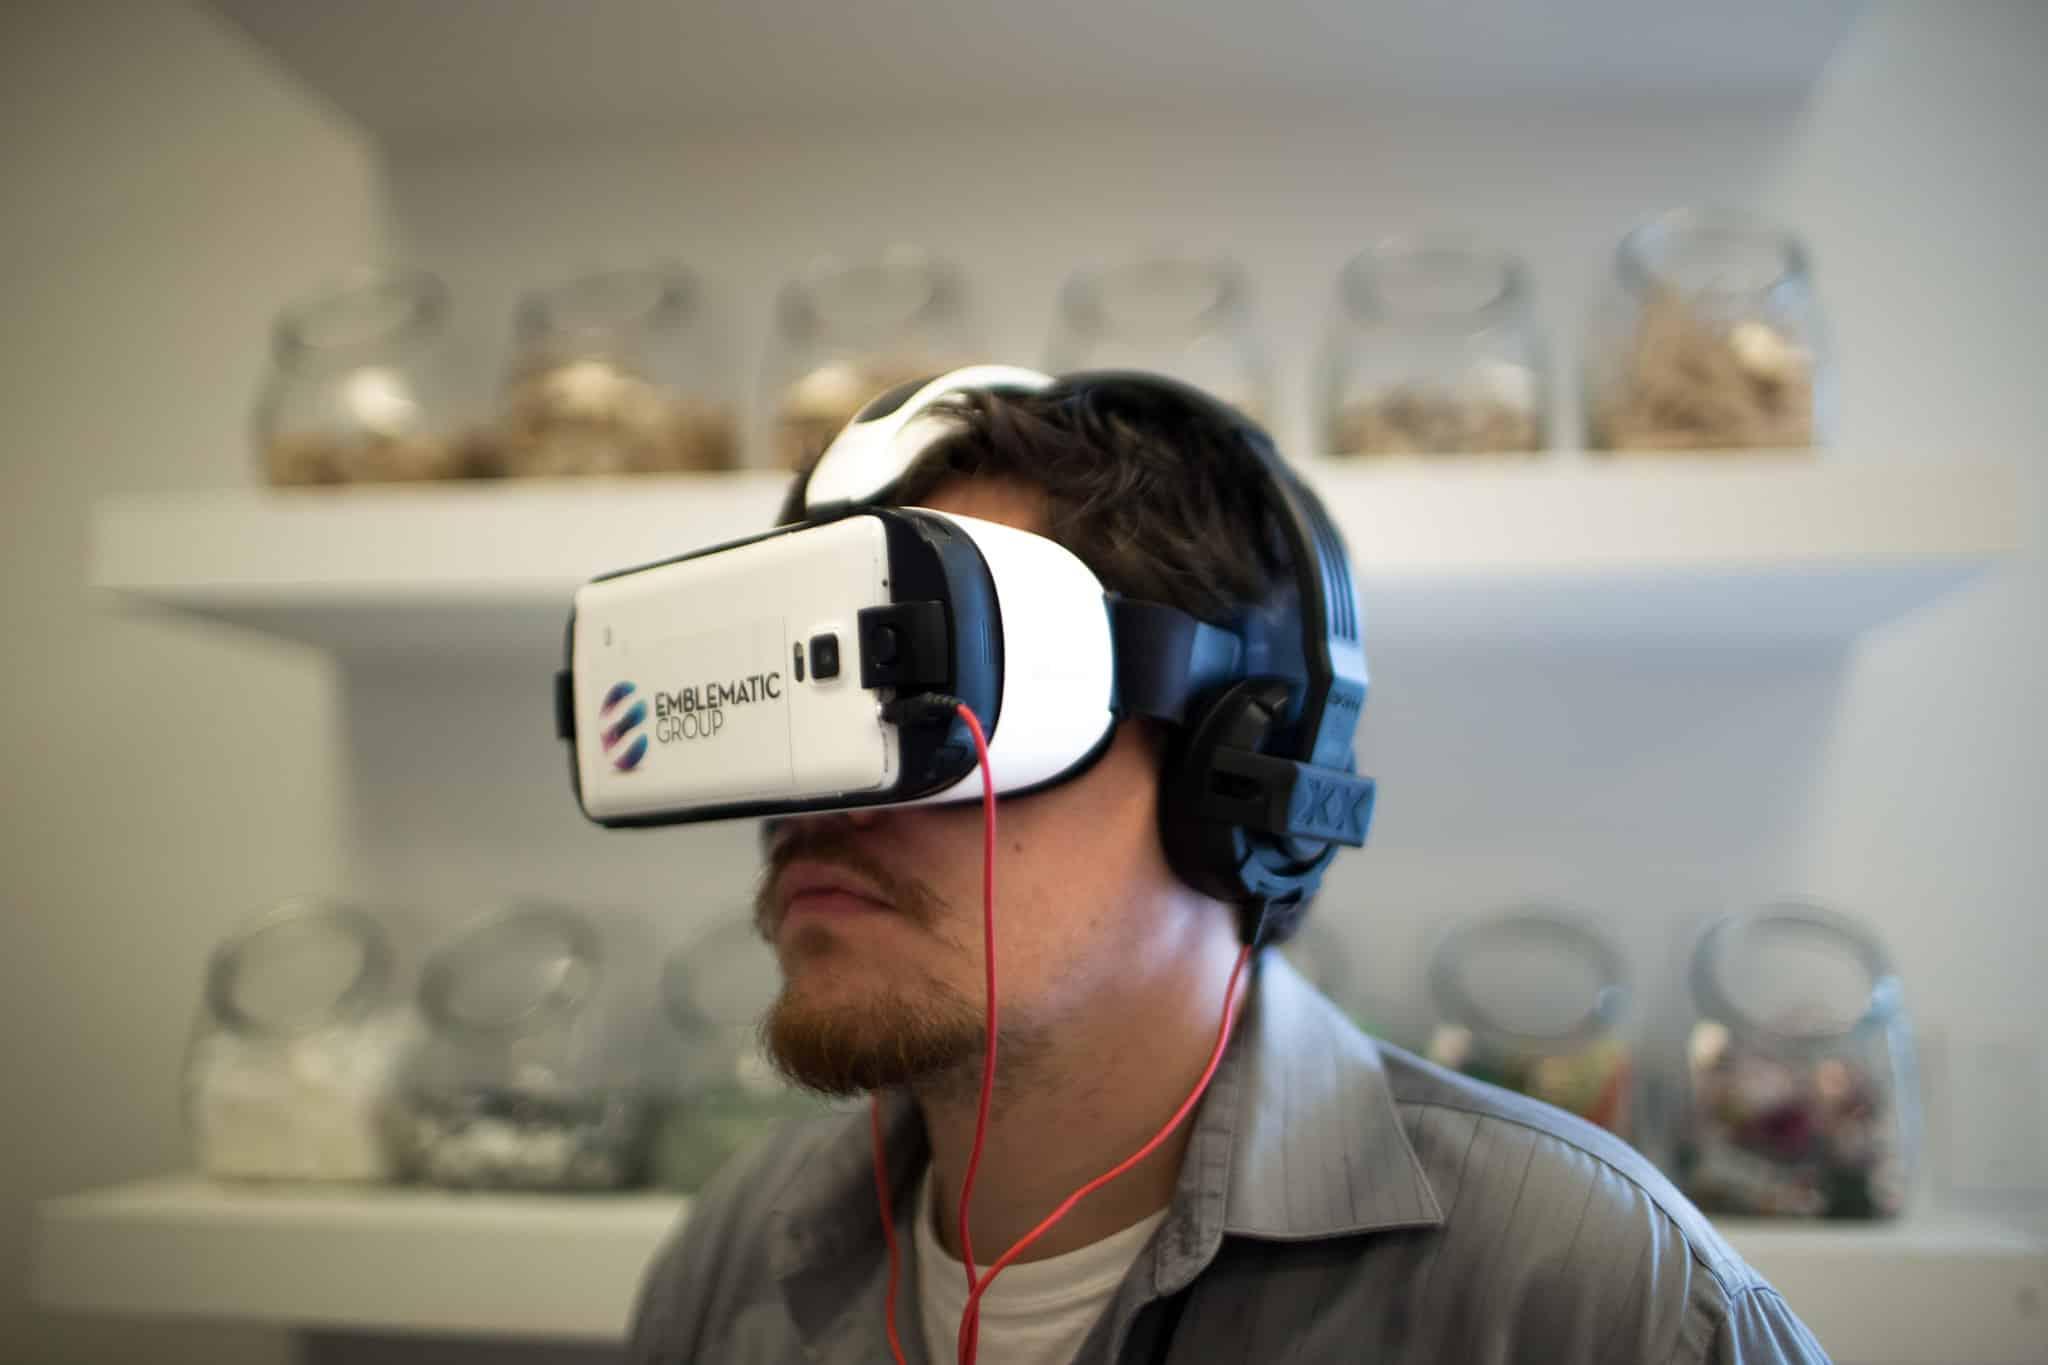 Tourist Attractions Set To Be Transformed By Virtual Reality And Digital Technology